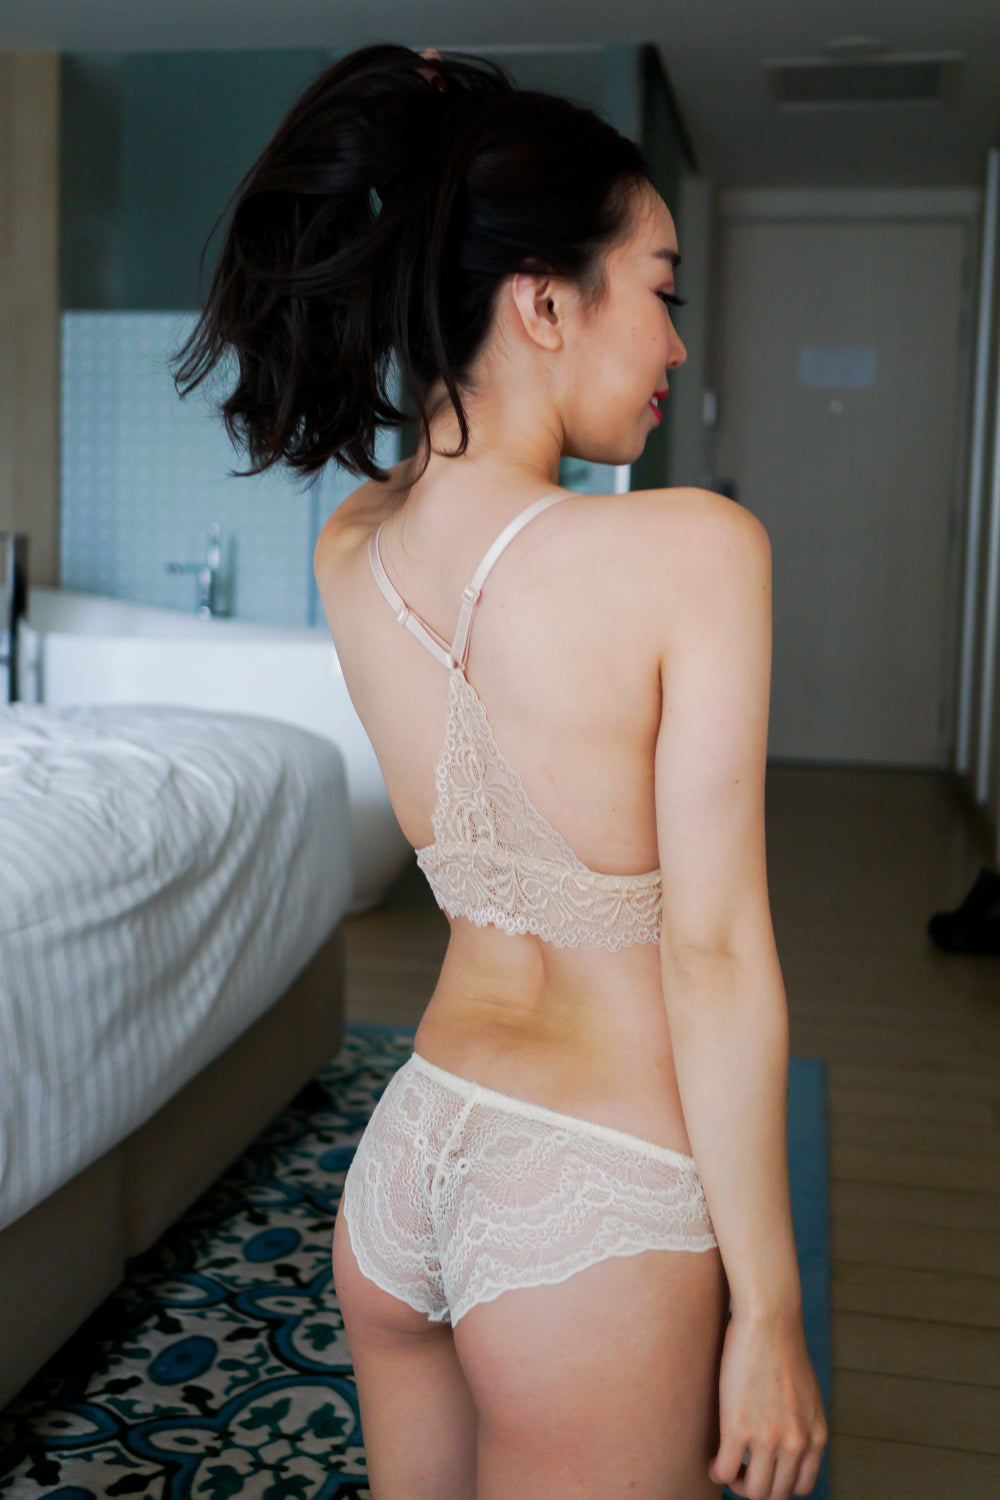 V Back Triangle Lace Bralette (Nude)